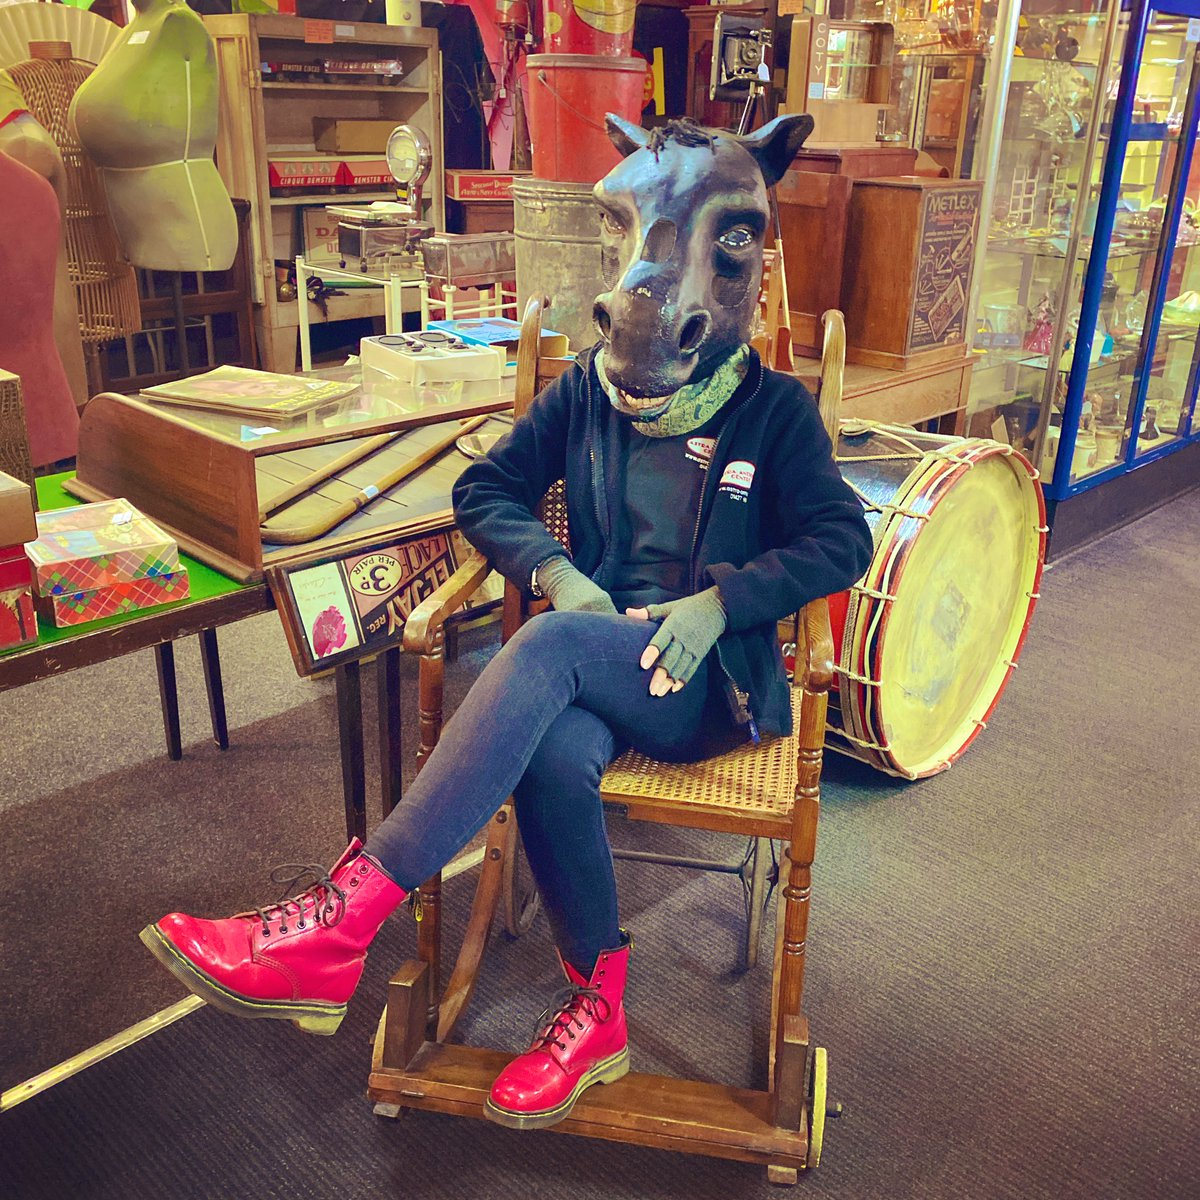 Well what can I say about this picture other than lots of new stock in and a certain staff member is feeling a little horse  #canyouguesswhoitisyet #laughedsomuch #horse #horseshead #pantomime #pantomimehead #vintagewheelchair #newstock #astraantiquescentre #hemswell <br>http://pic.twitter.com/Wcs3ZFLOyd